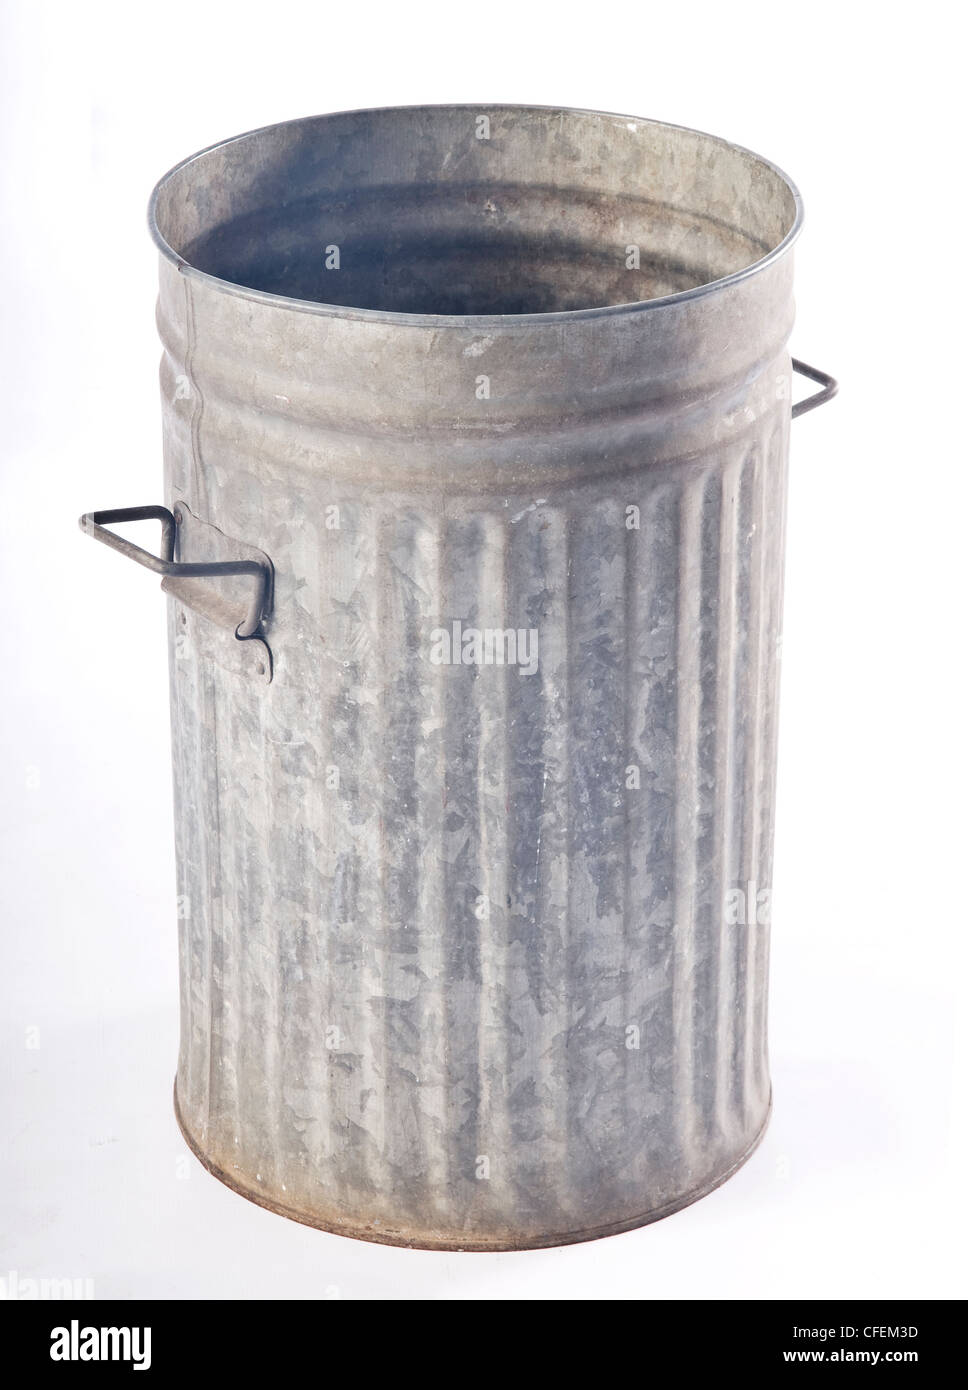 An Old Corrugated Metal Garbage Bin With Folding Handles